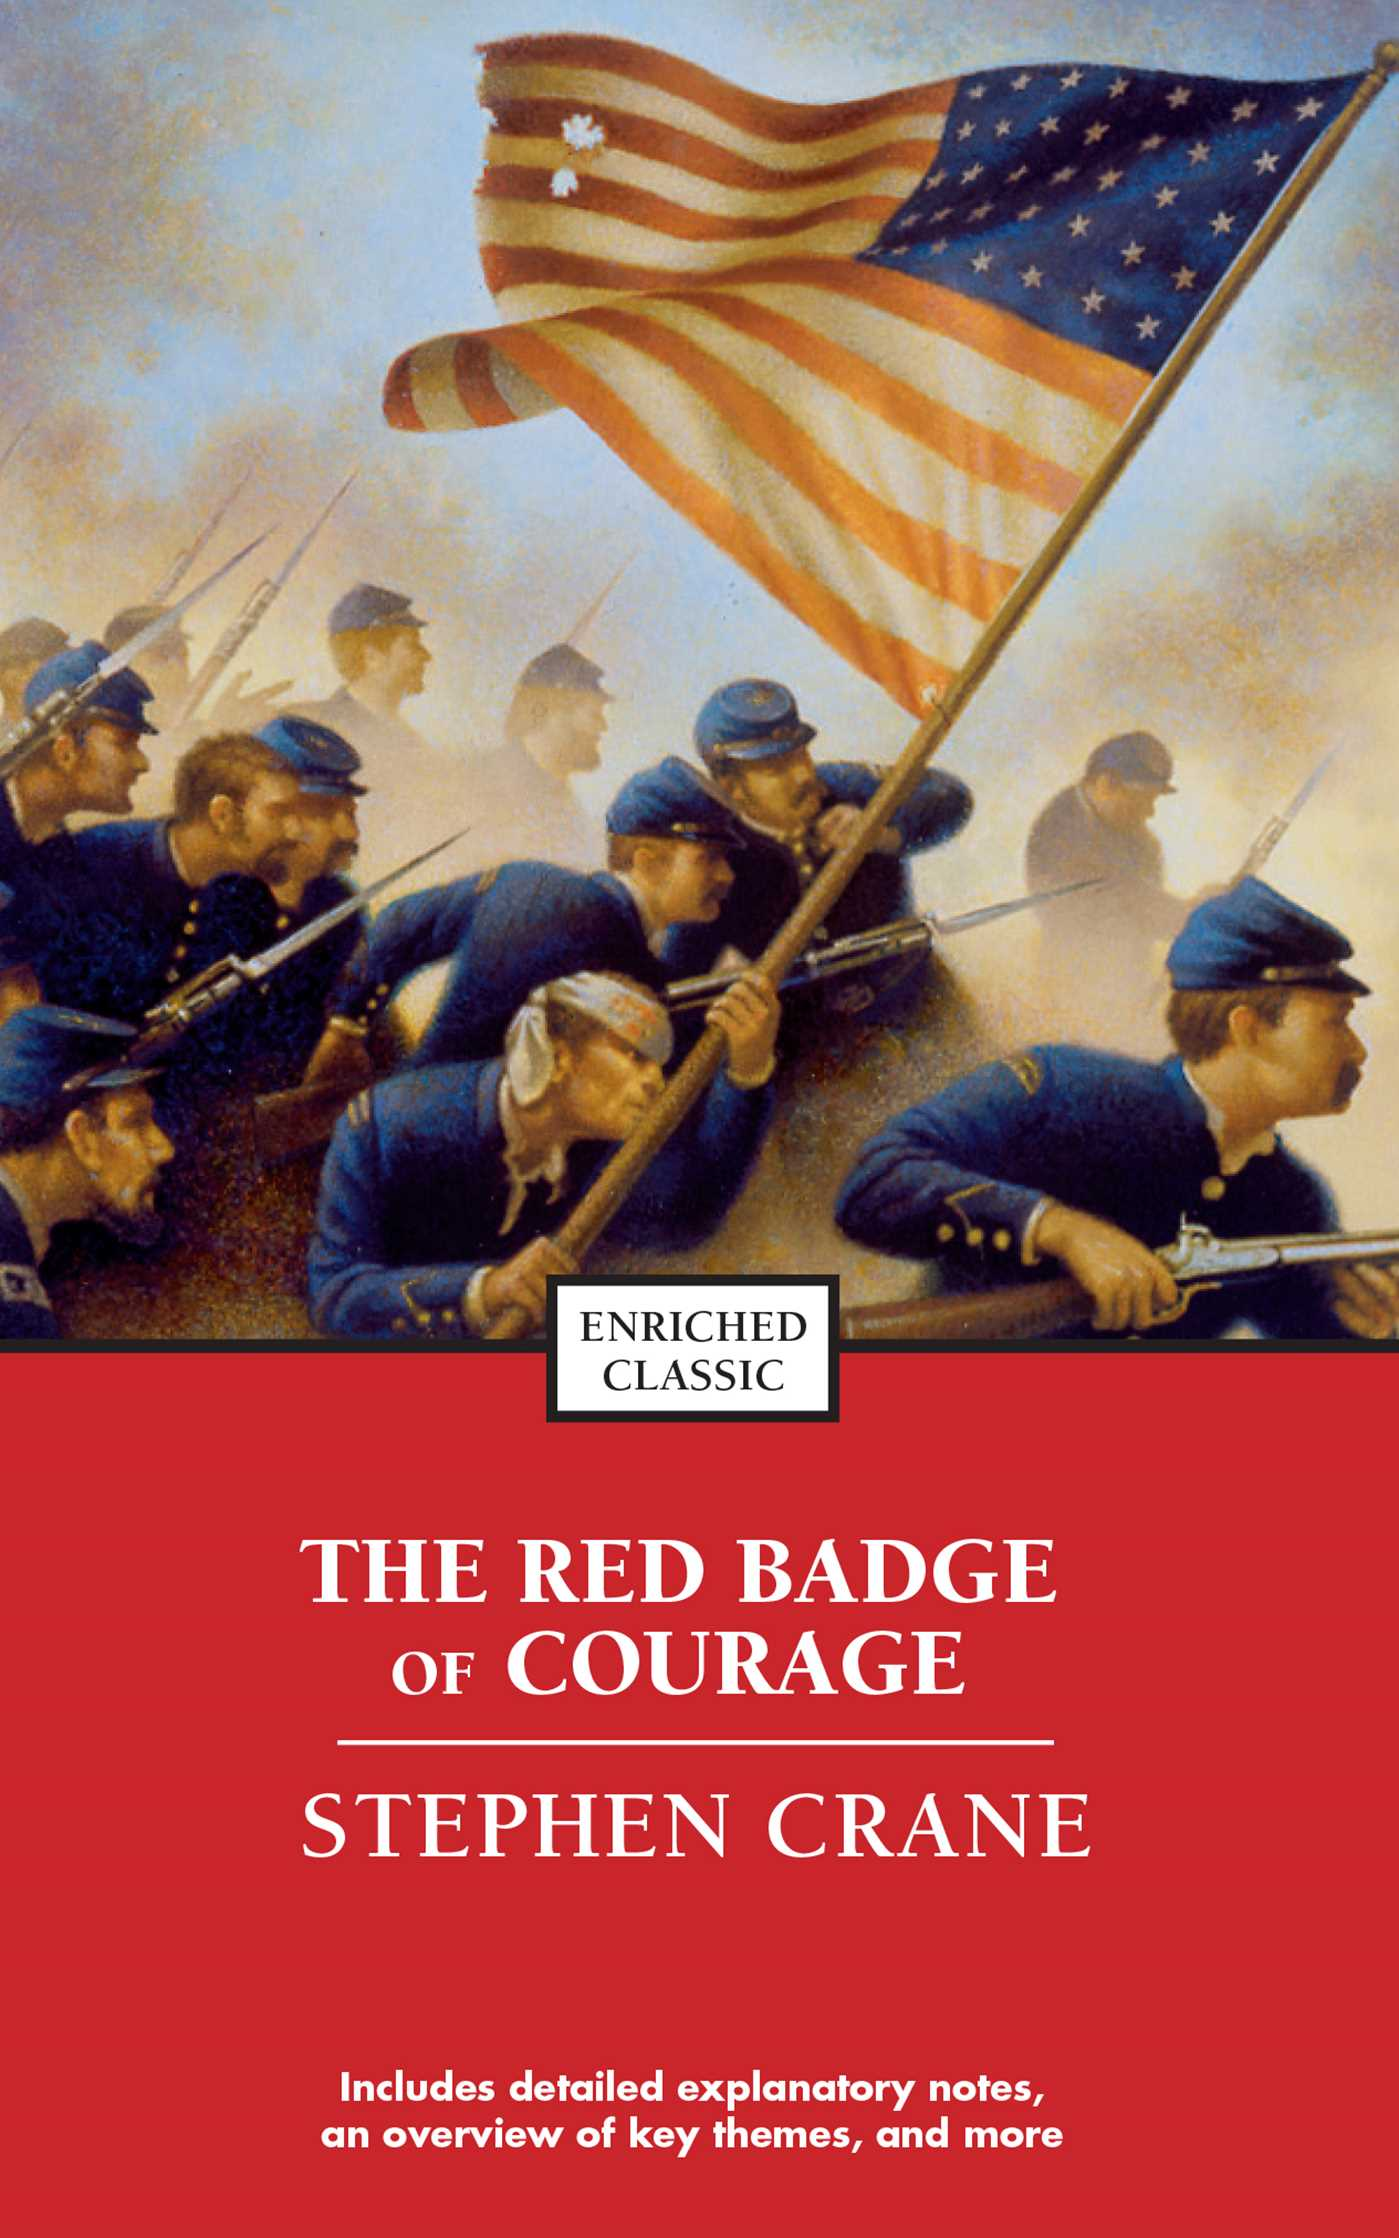 religion in red badge of courage Red is also used as a symbol of courage and sacrifice, as in blood spilt in  sacrifice or courage in the face of lethal danger  as well as in the novel the  red badge of courage, in which a soldier in the american  in religion and  metaphysics.